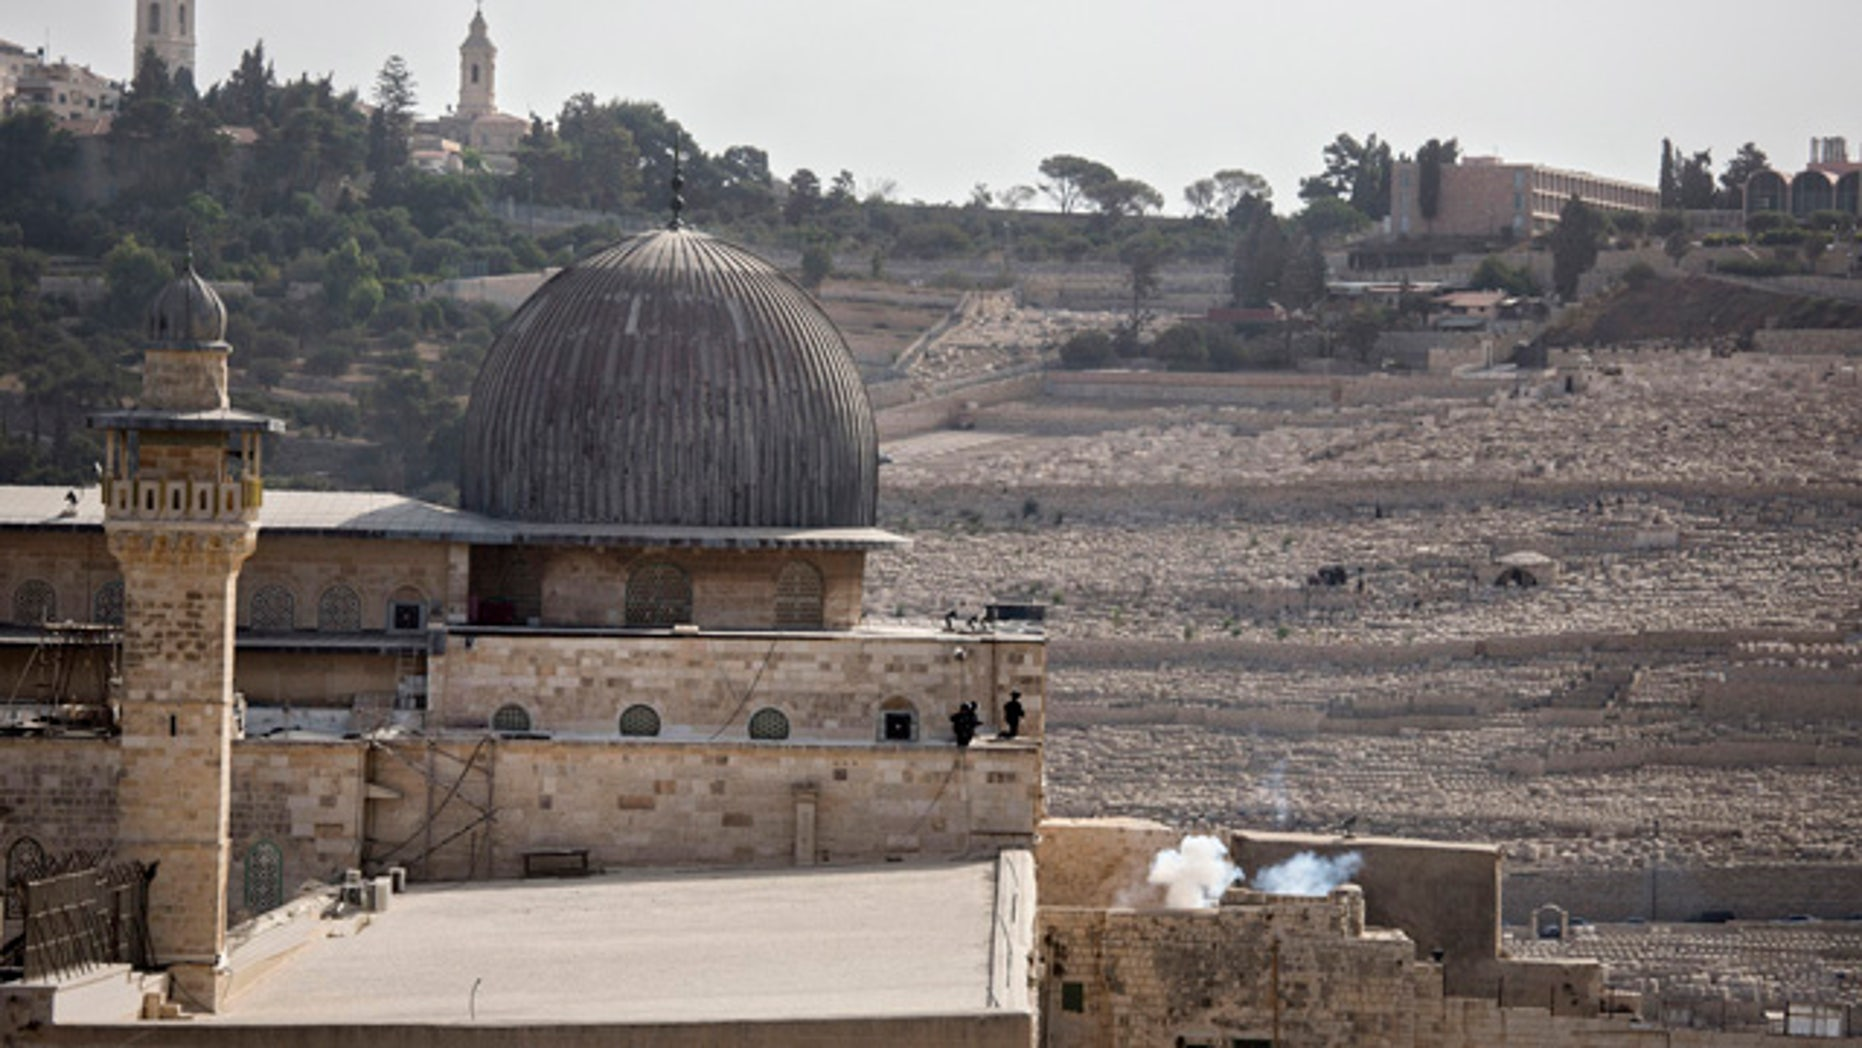 Sept: 13, 2015: Israeli border police are seen inside the Al Aqsa Mosque compound after firing teargas or a smoke grenade in Jerusalem's Old City. (AP Photo/Tsafrir Abayov)